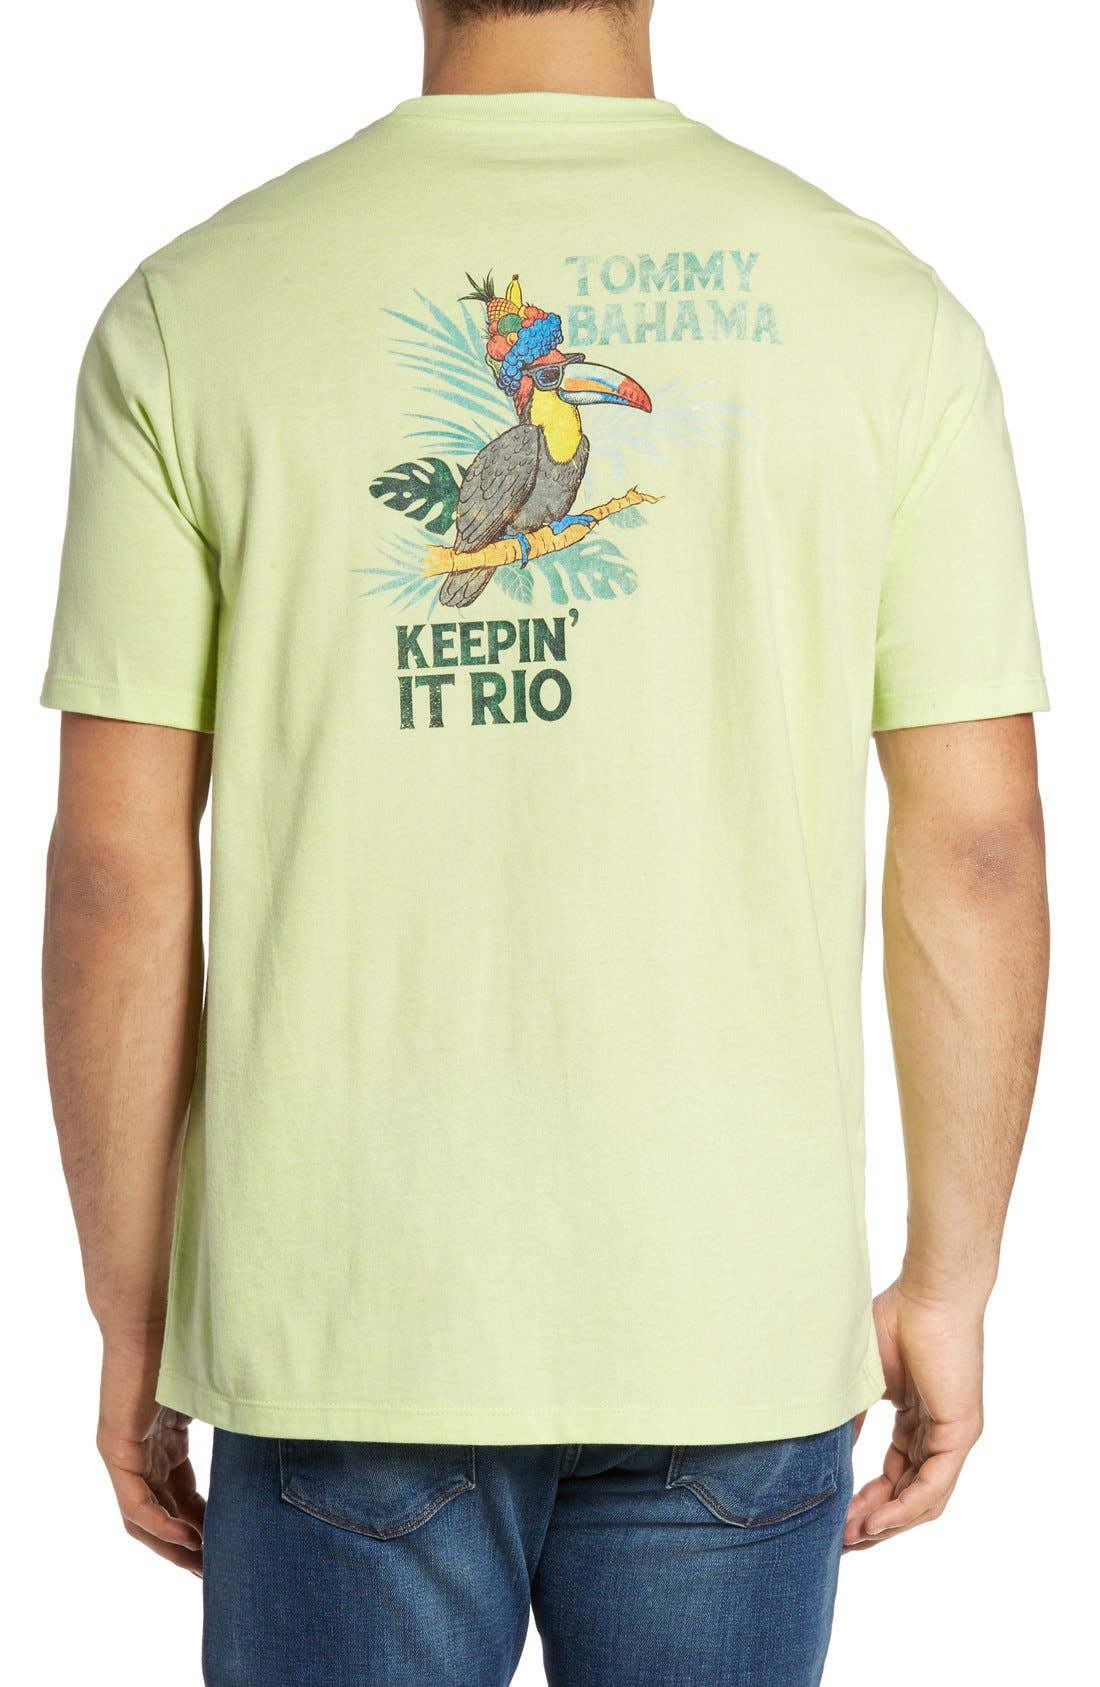 Alternate Image 1 Selected - Tommy Bahama Keeping It Rio Graphic T-Shirt (Big & Tall)